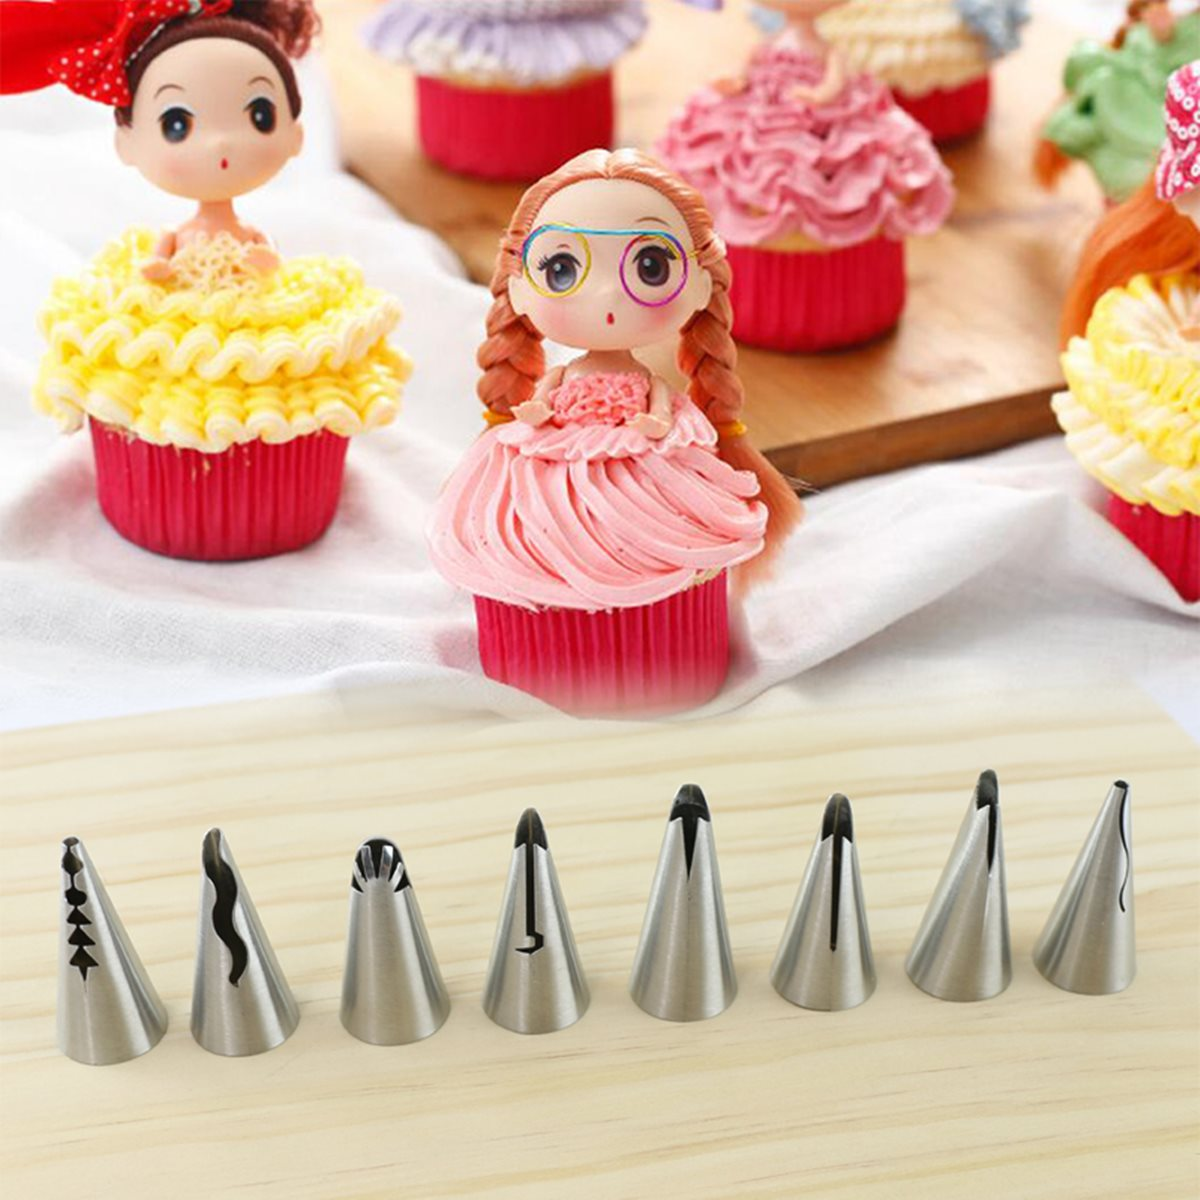 Pcs set stainless steel icing piping nozzles pastry cake